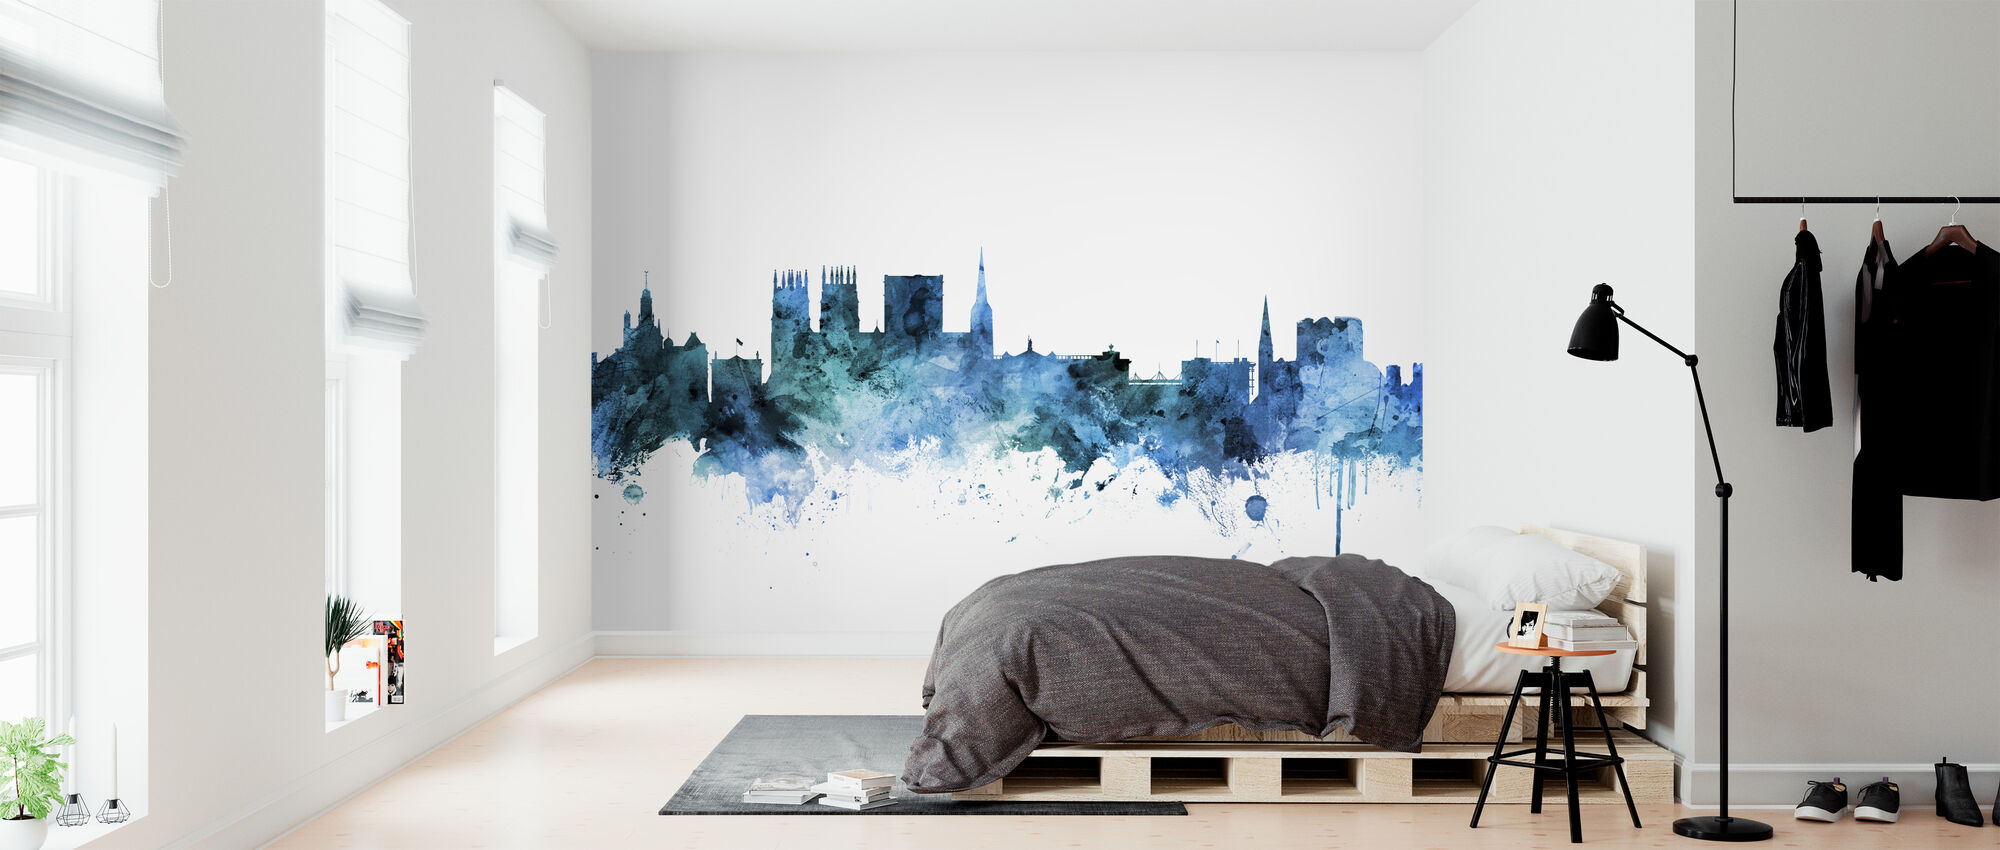 York England Skyline - Behang - Slaapkamer